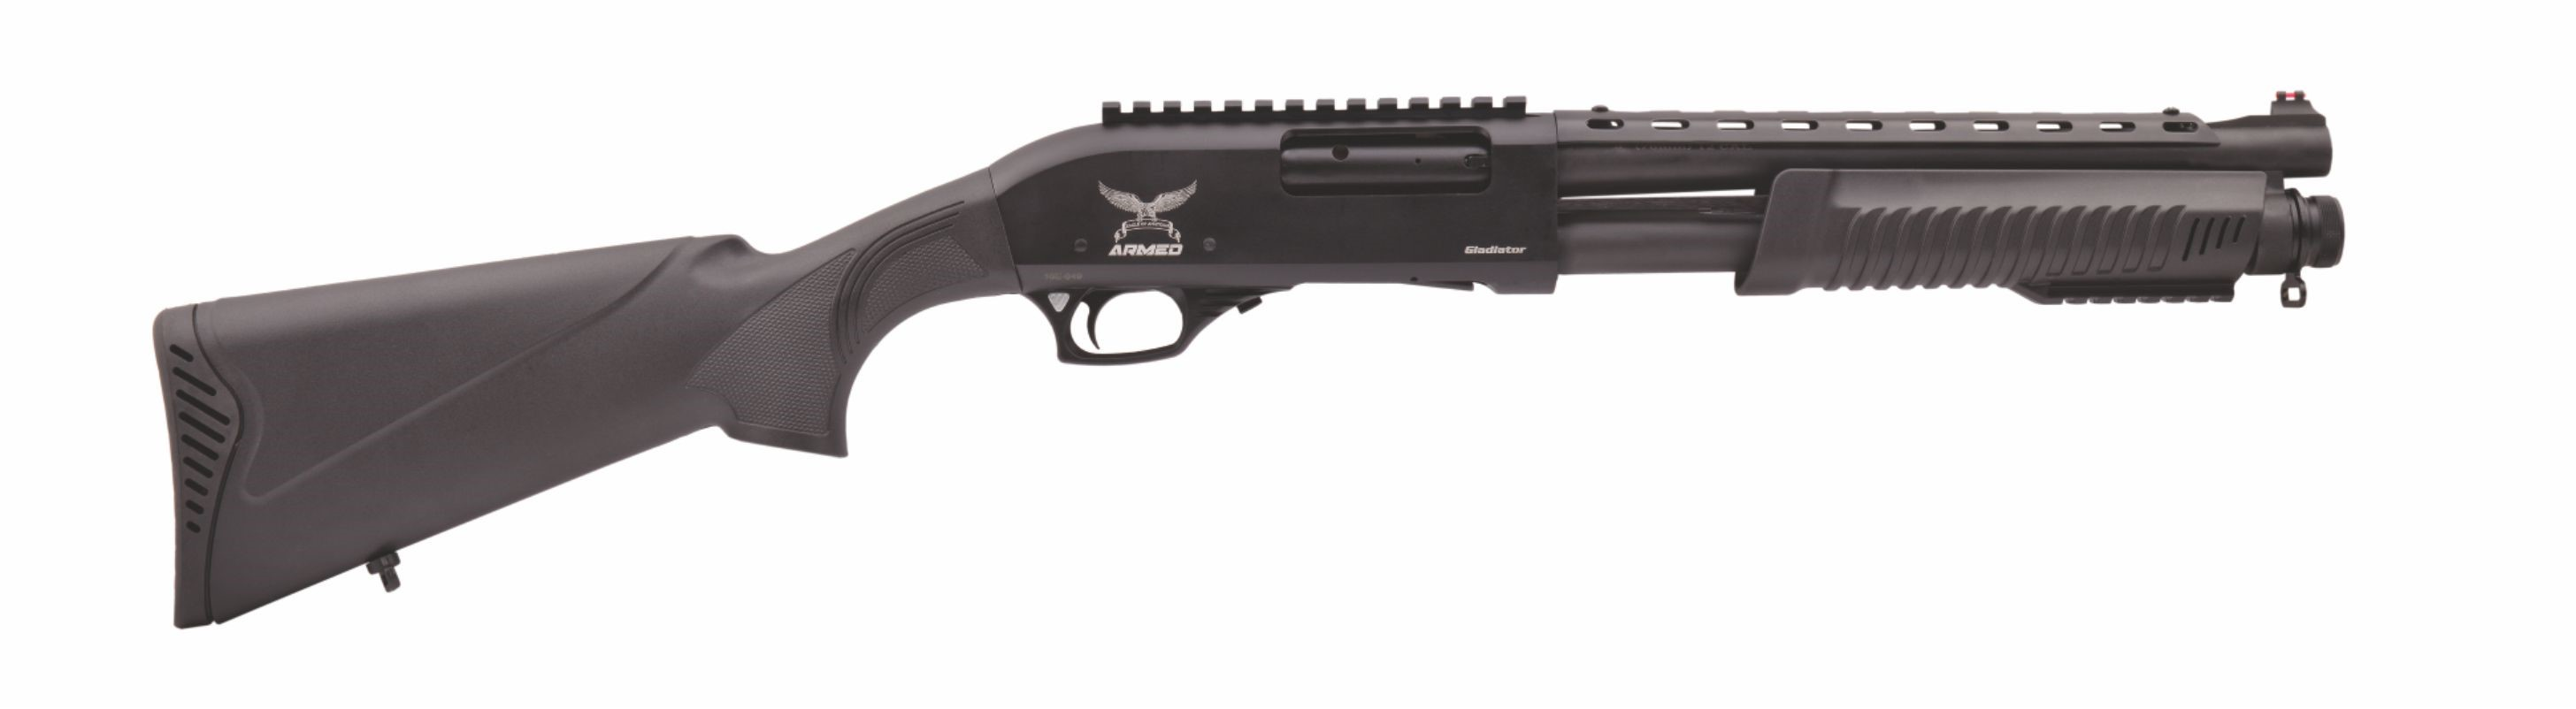 Tactical G1 Pump Action 13 inch barrel